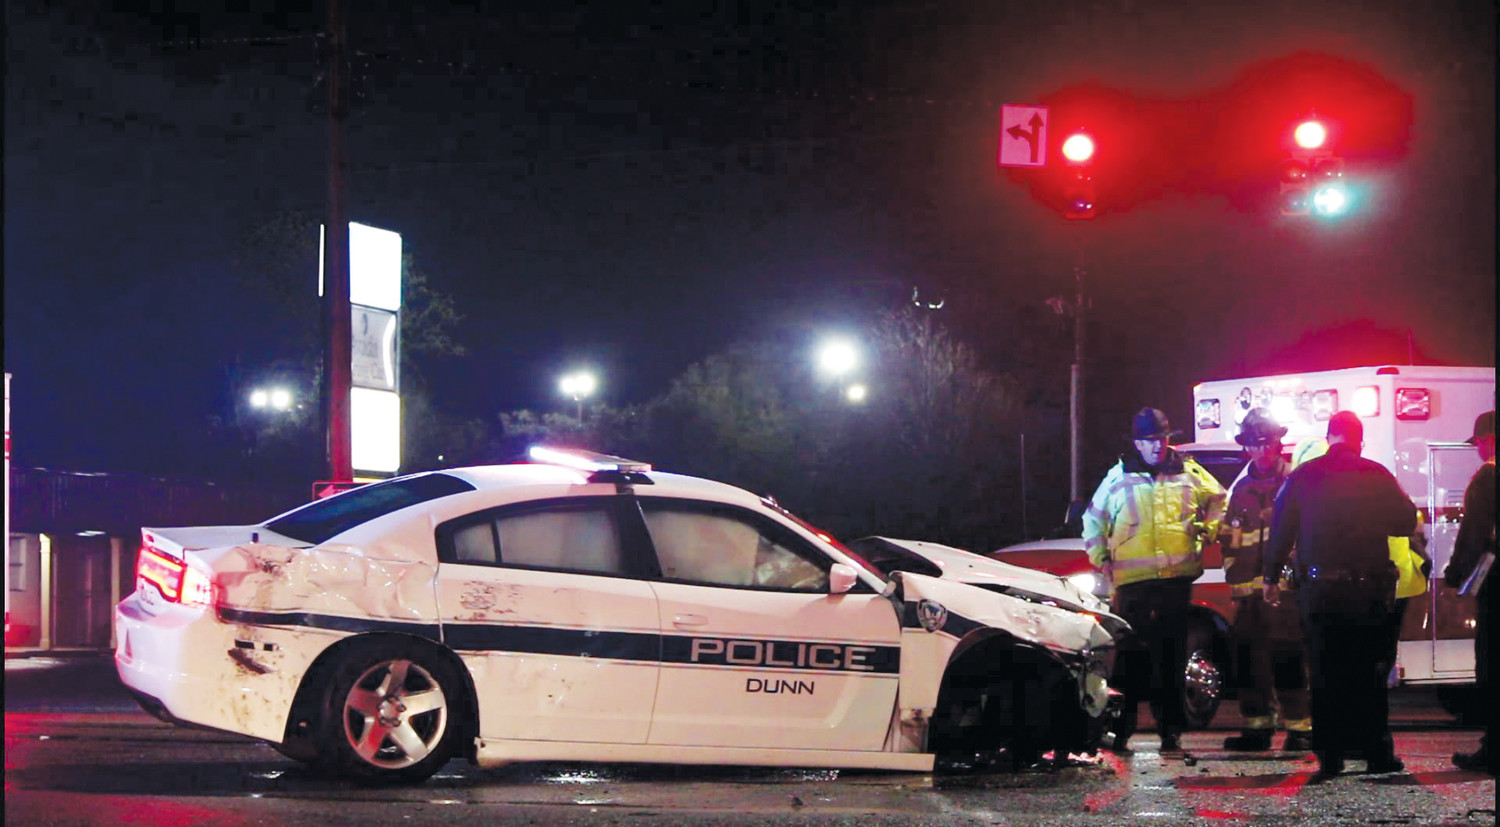 Dunn Police officer in wreck | The Daily Record